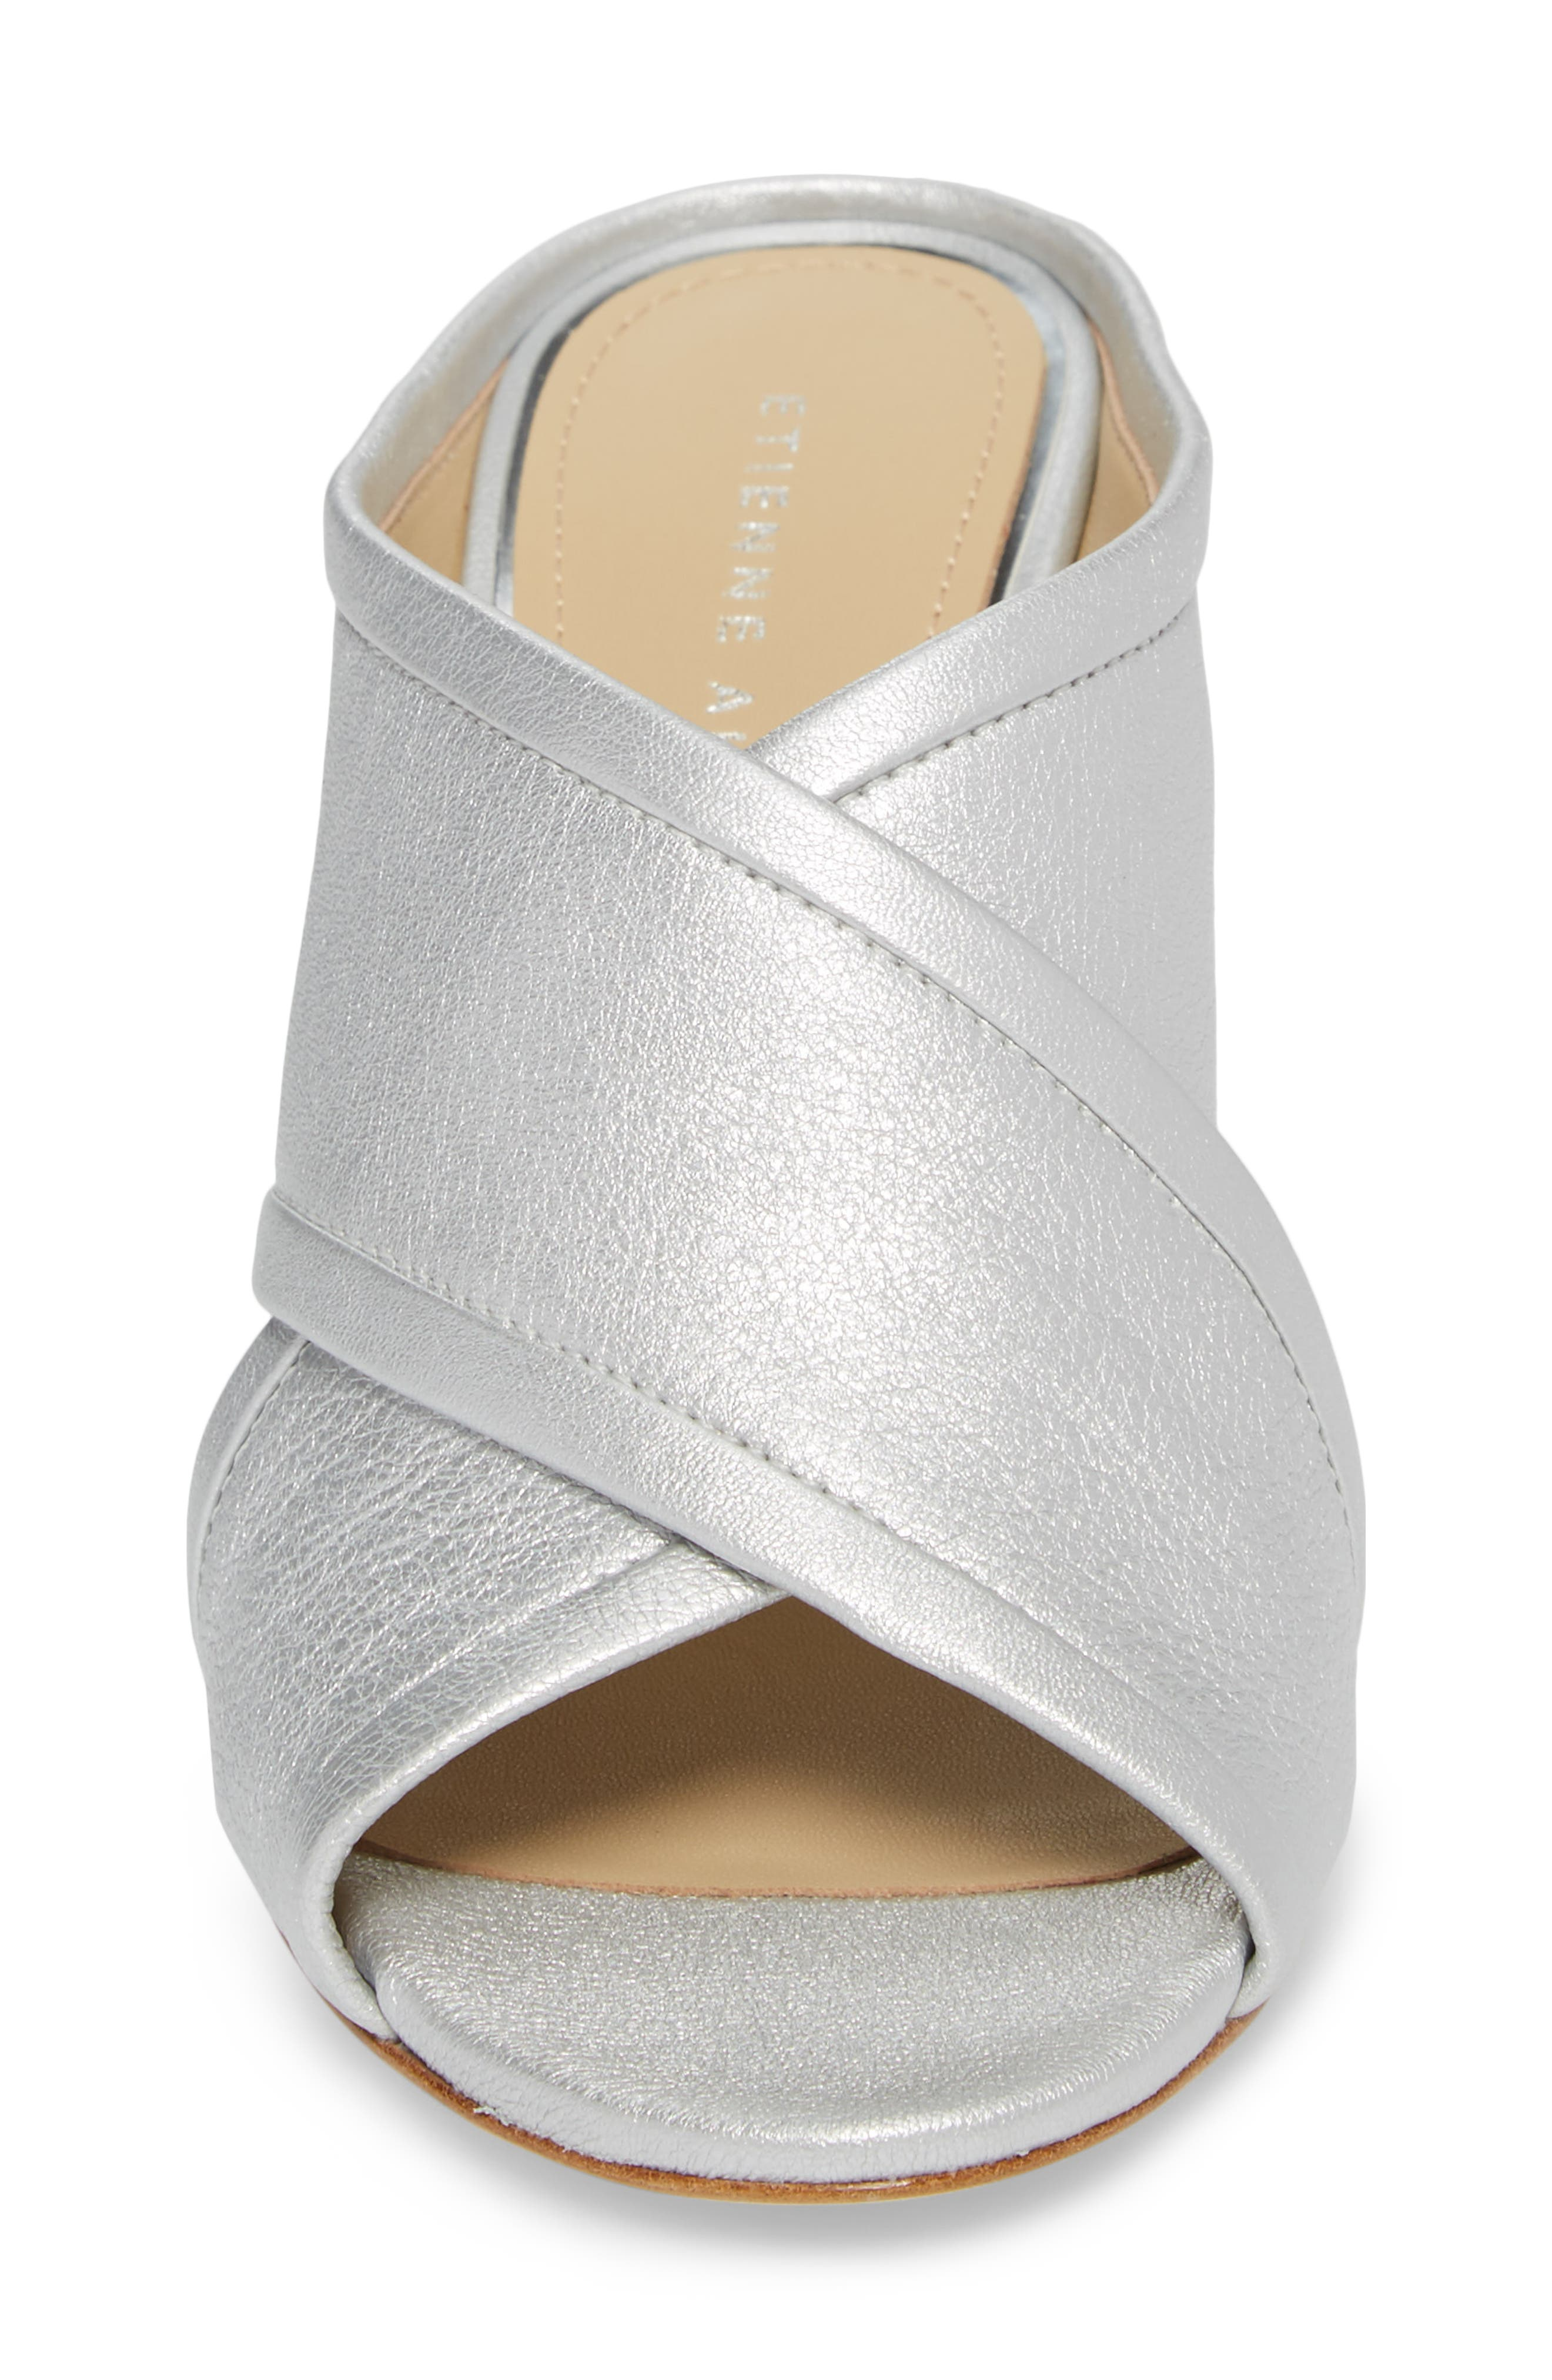 Lido Sandal,                             Alternate thumbnail 4, color,                             SILVER LEATHER